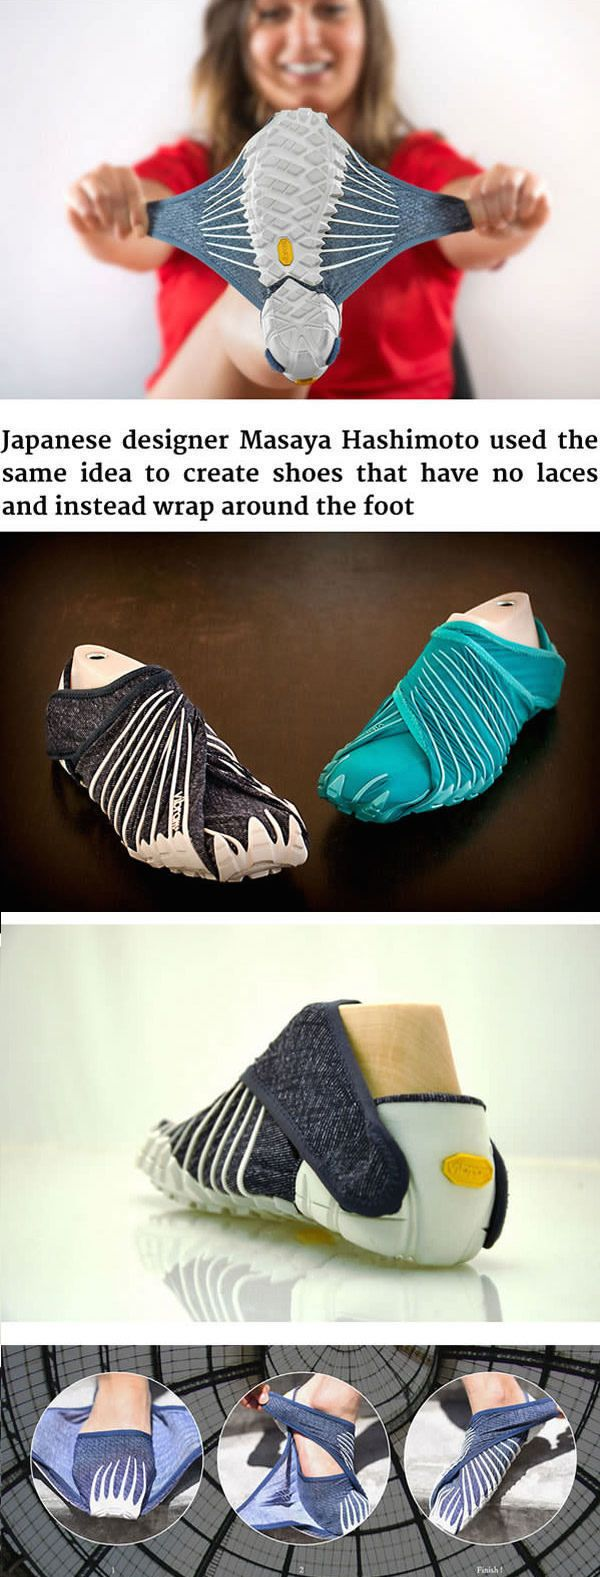 29 Weird Japanese Inventions That You Don't Need… But Will Definitely Want. - http://www.lifebuzz.com/japanese-invents/